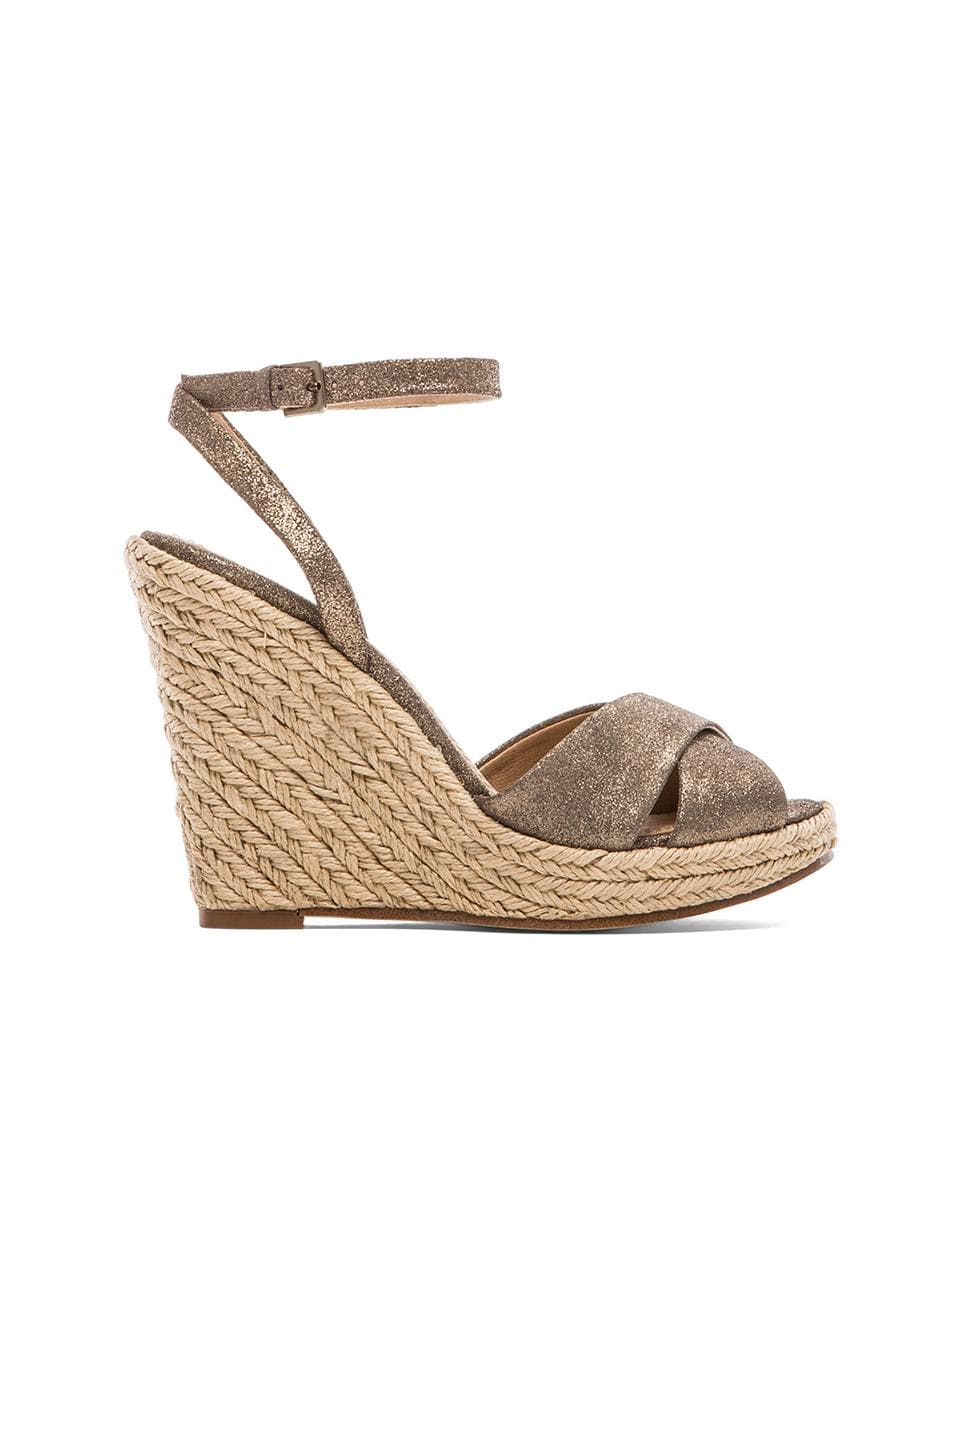 Splendid Benton Wedge Sandal in Champagne